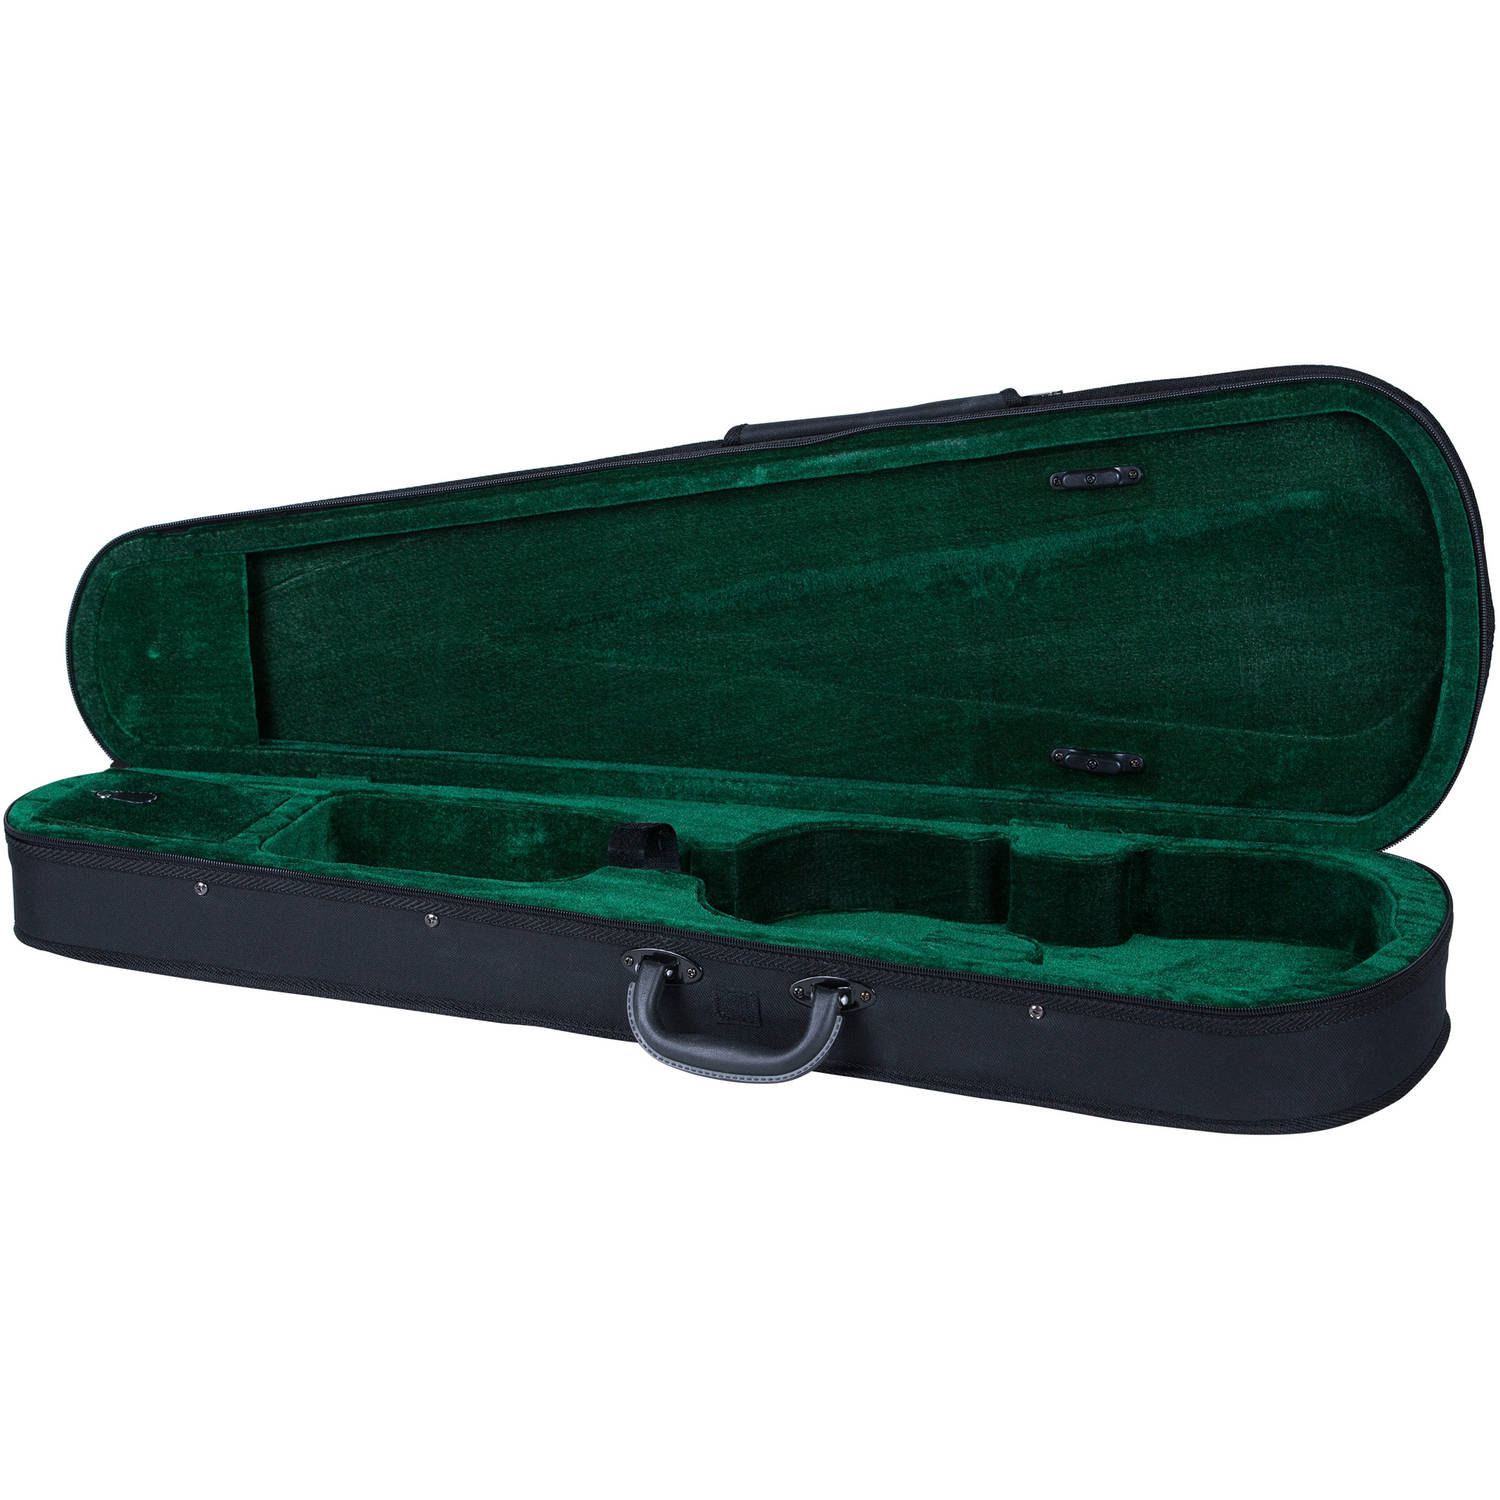 Featherweight C-3907 Violin Case, Semi-shaped, 3/4 Size